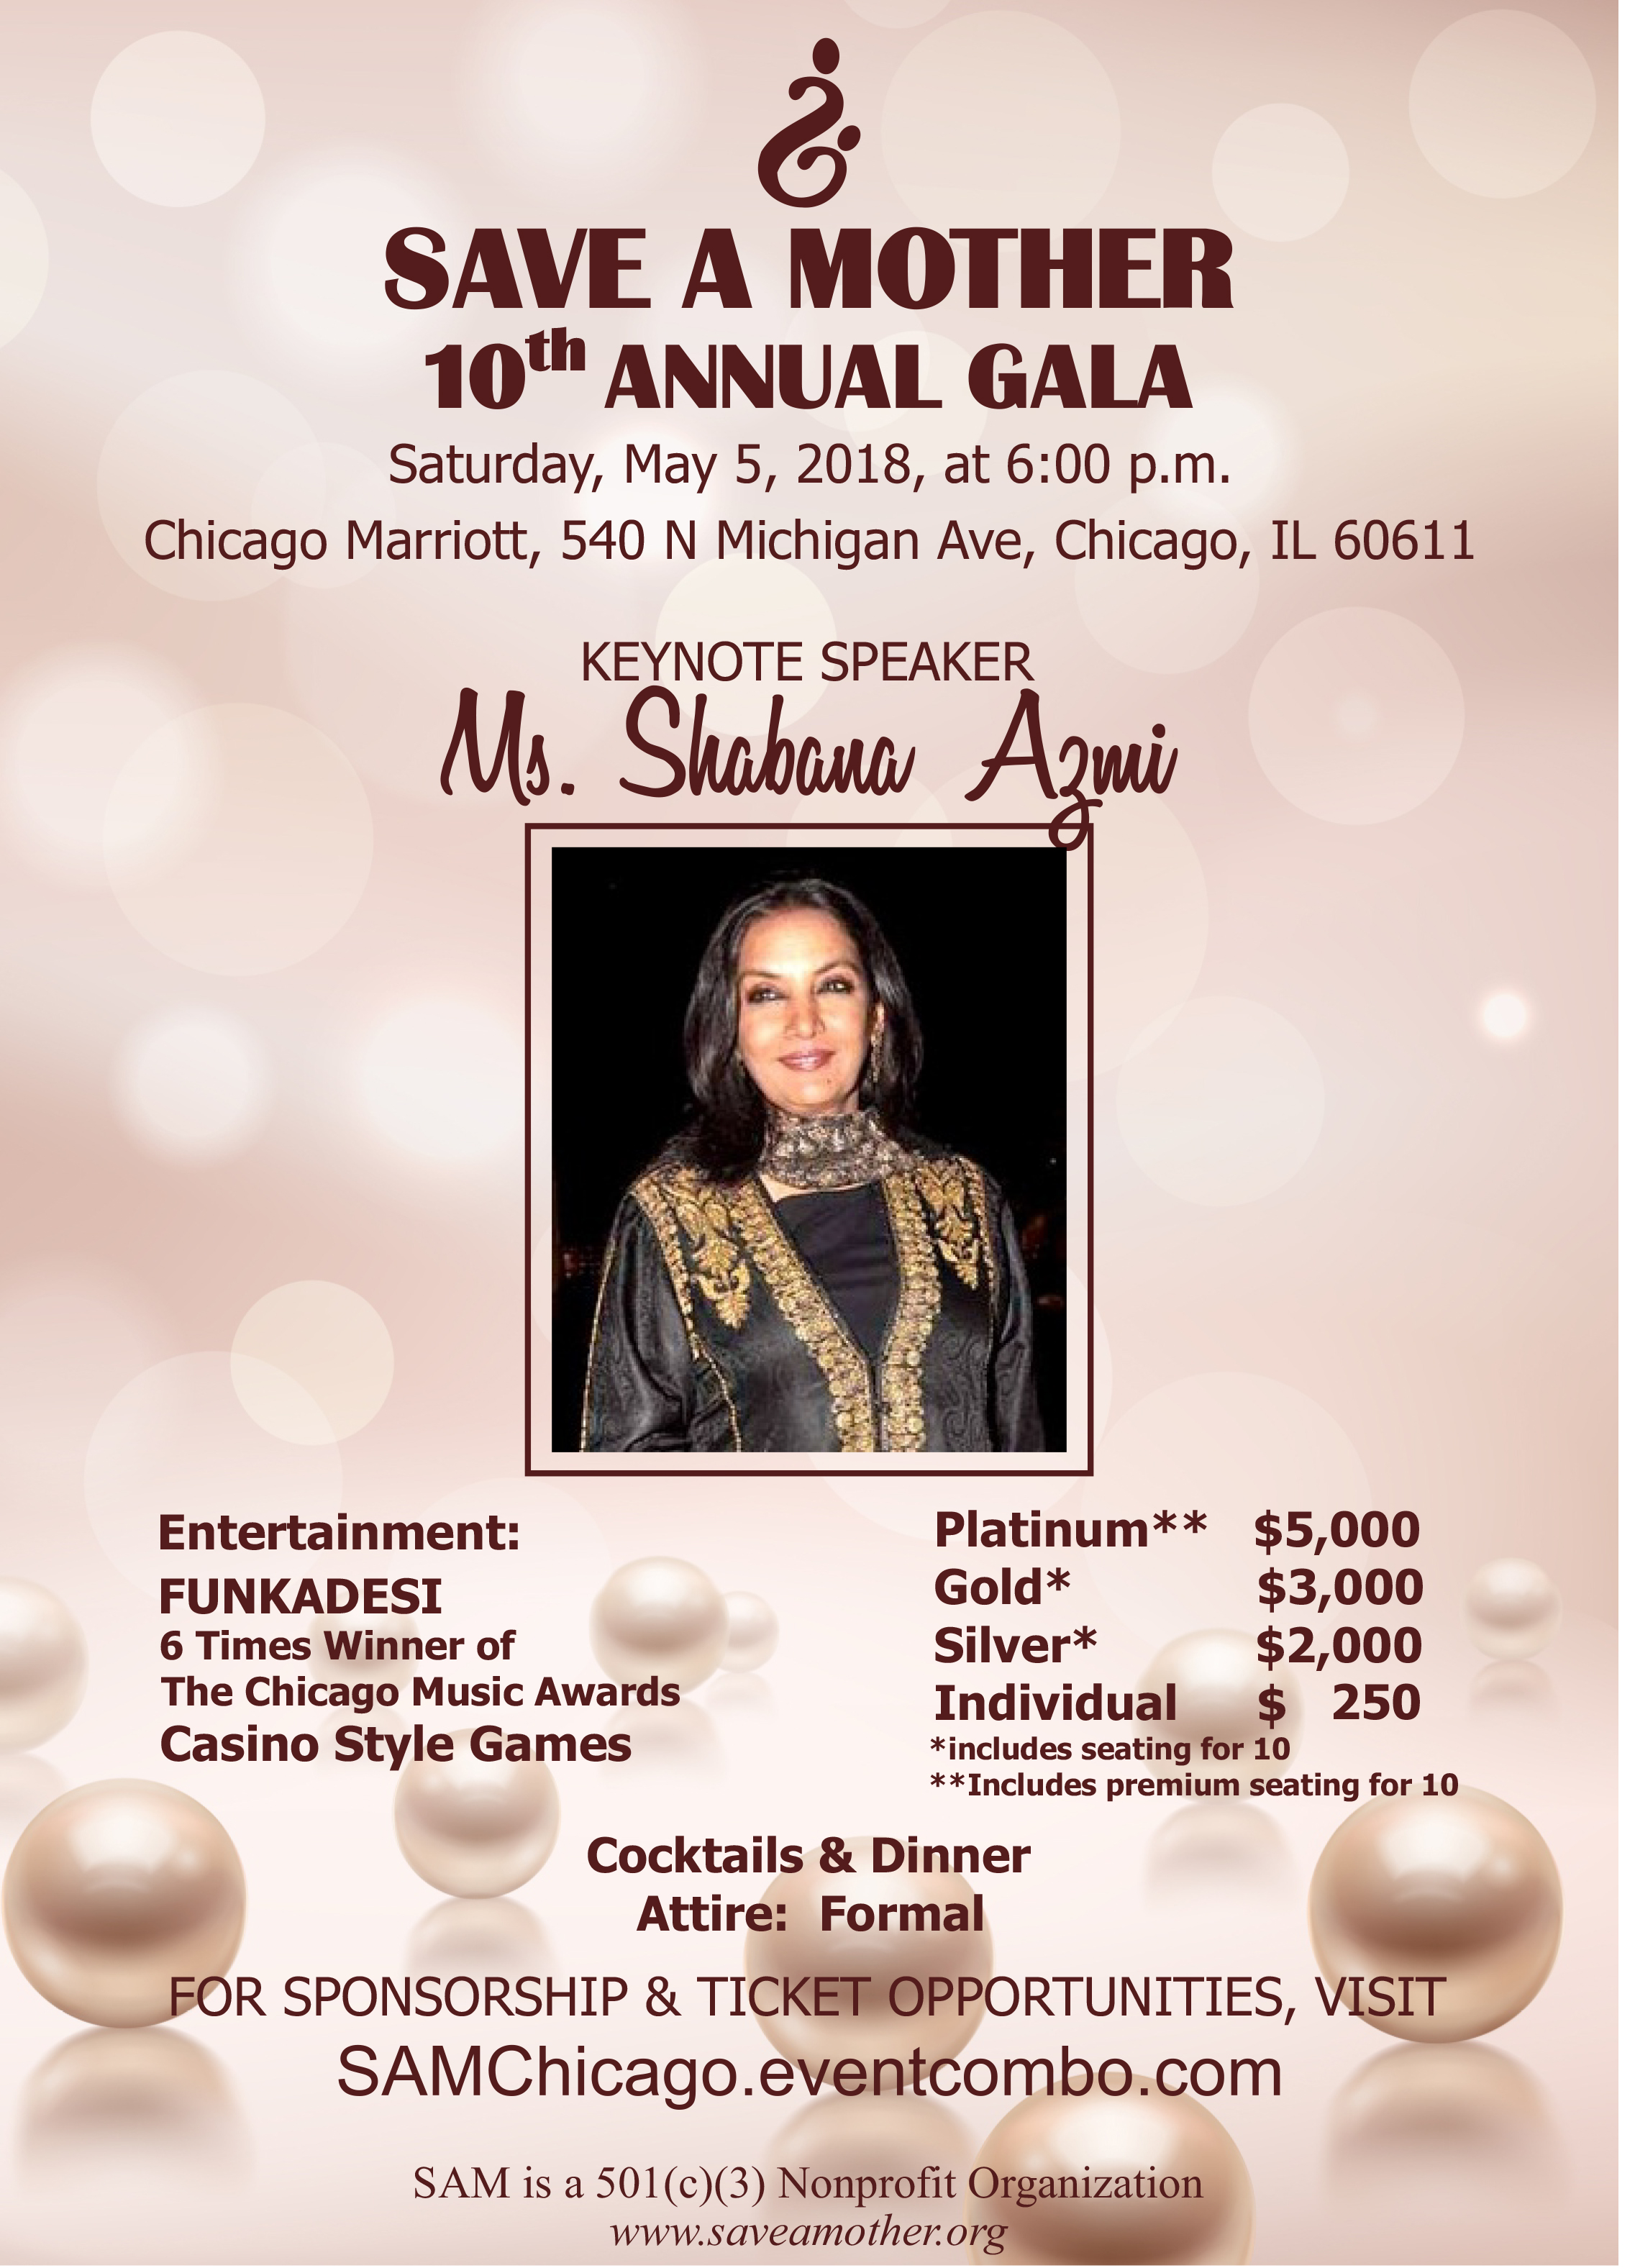 Save A Mother 10th Annual Gala in Chicago